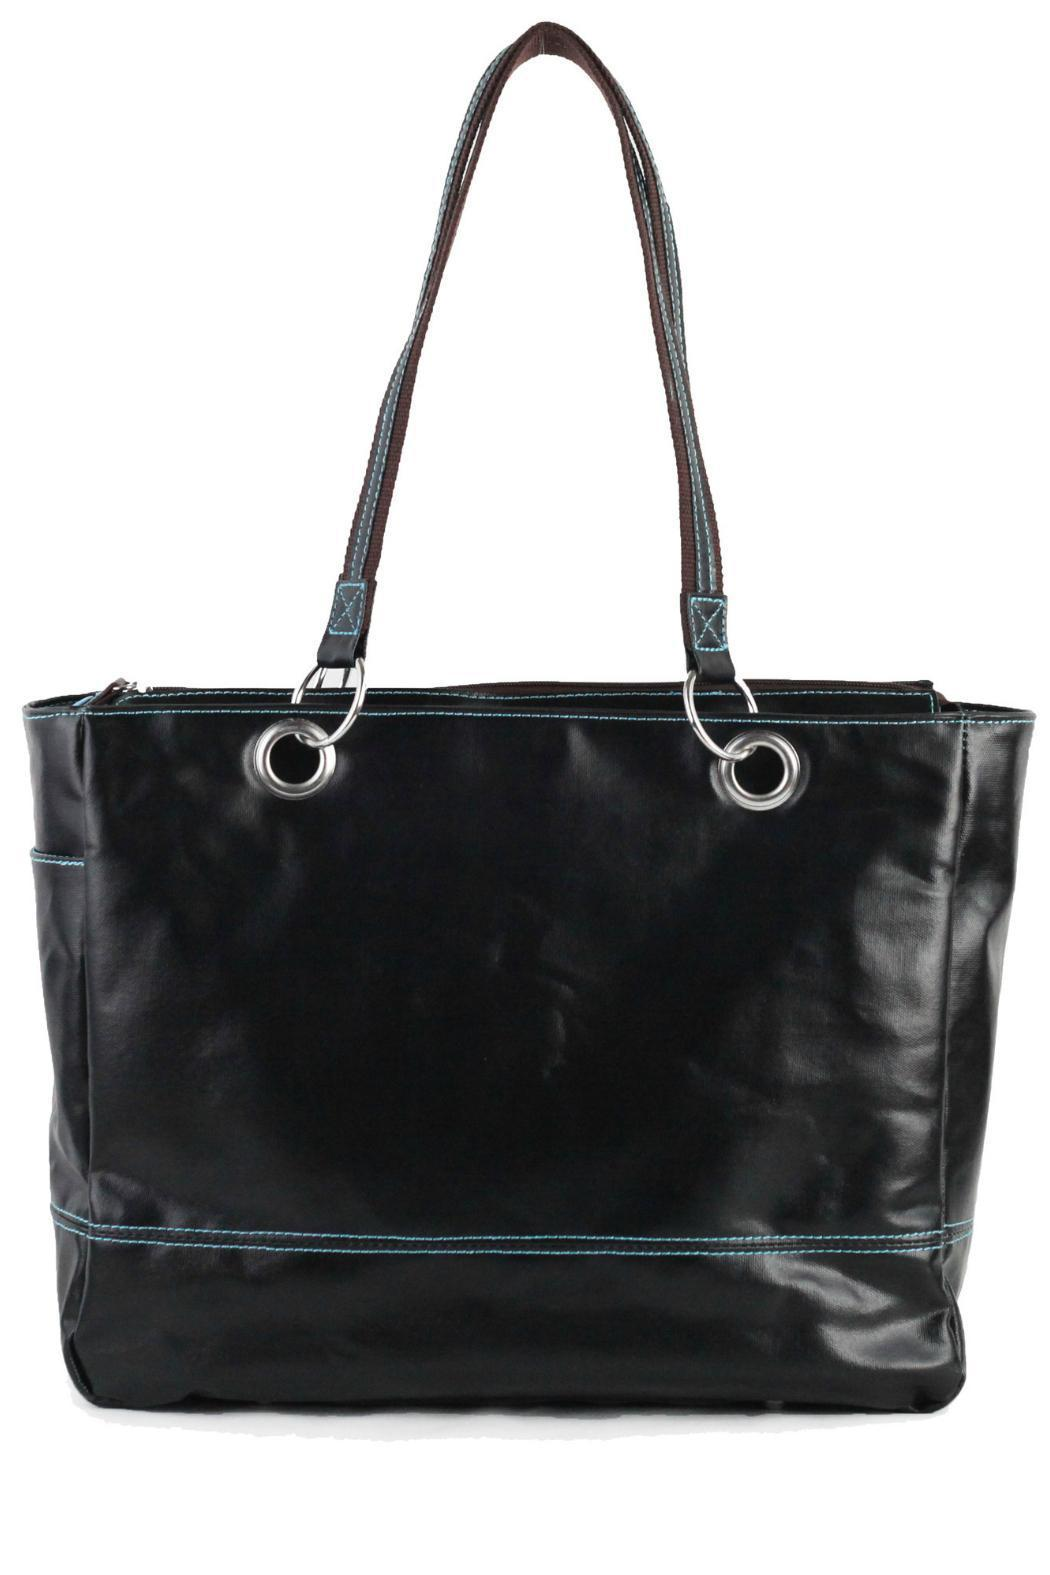 Urban Junket Nancy Tote Bag from Tennessee by The French ...